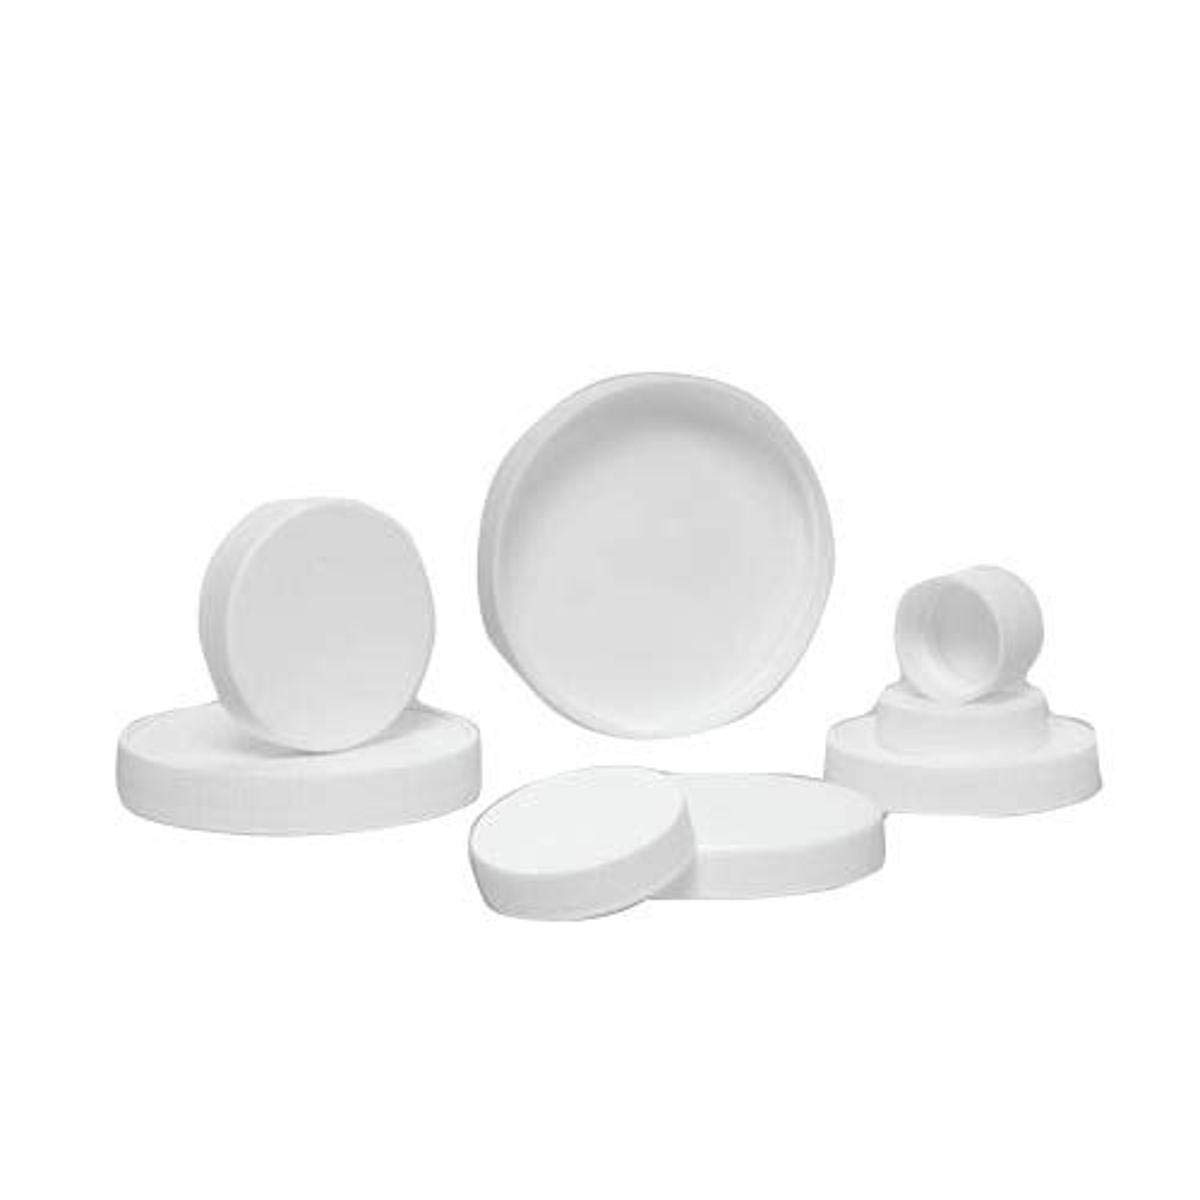 Qorpak CAP-00366 Ranking TOP14 38-400 White Ribbed Polypropylene Max 42% OFF Unlined Cap